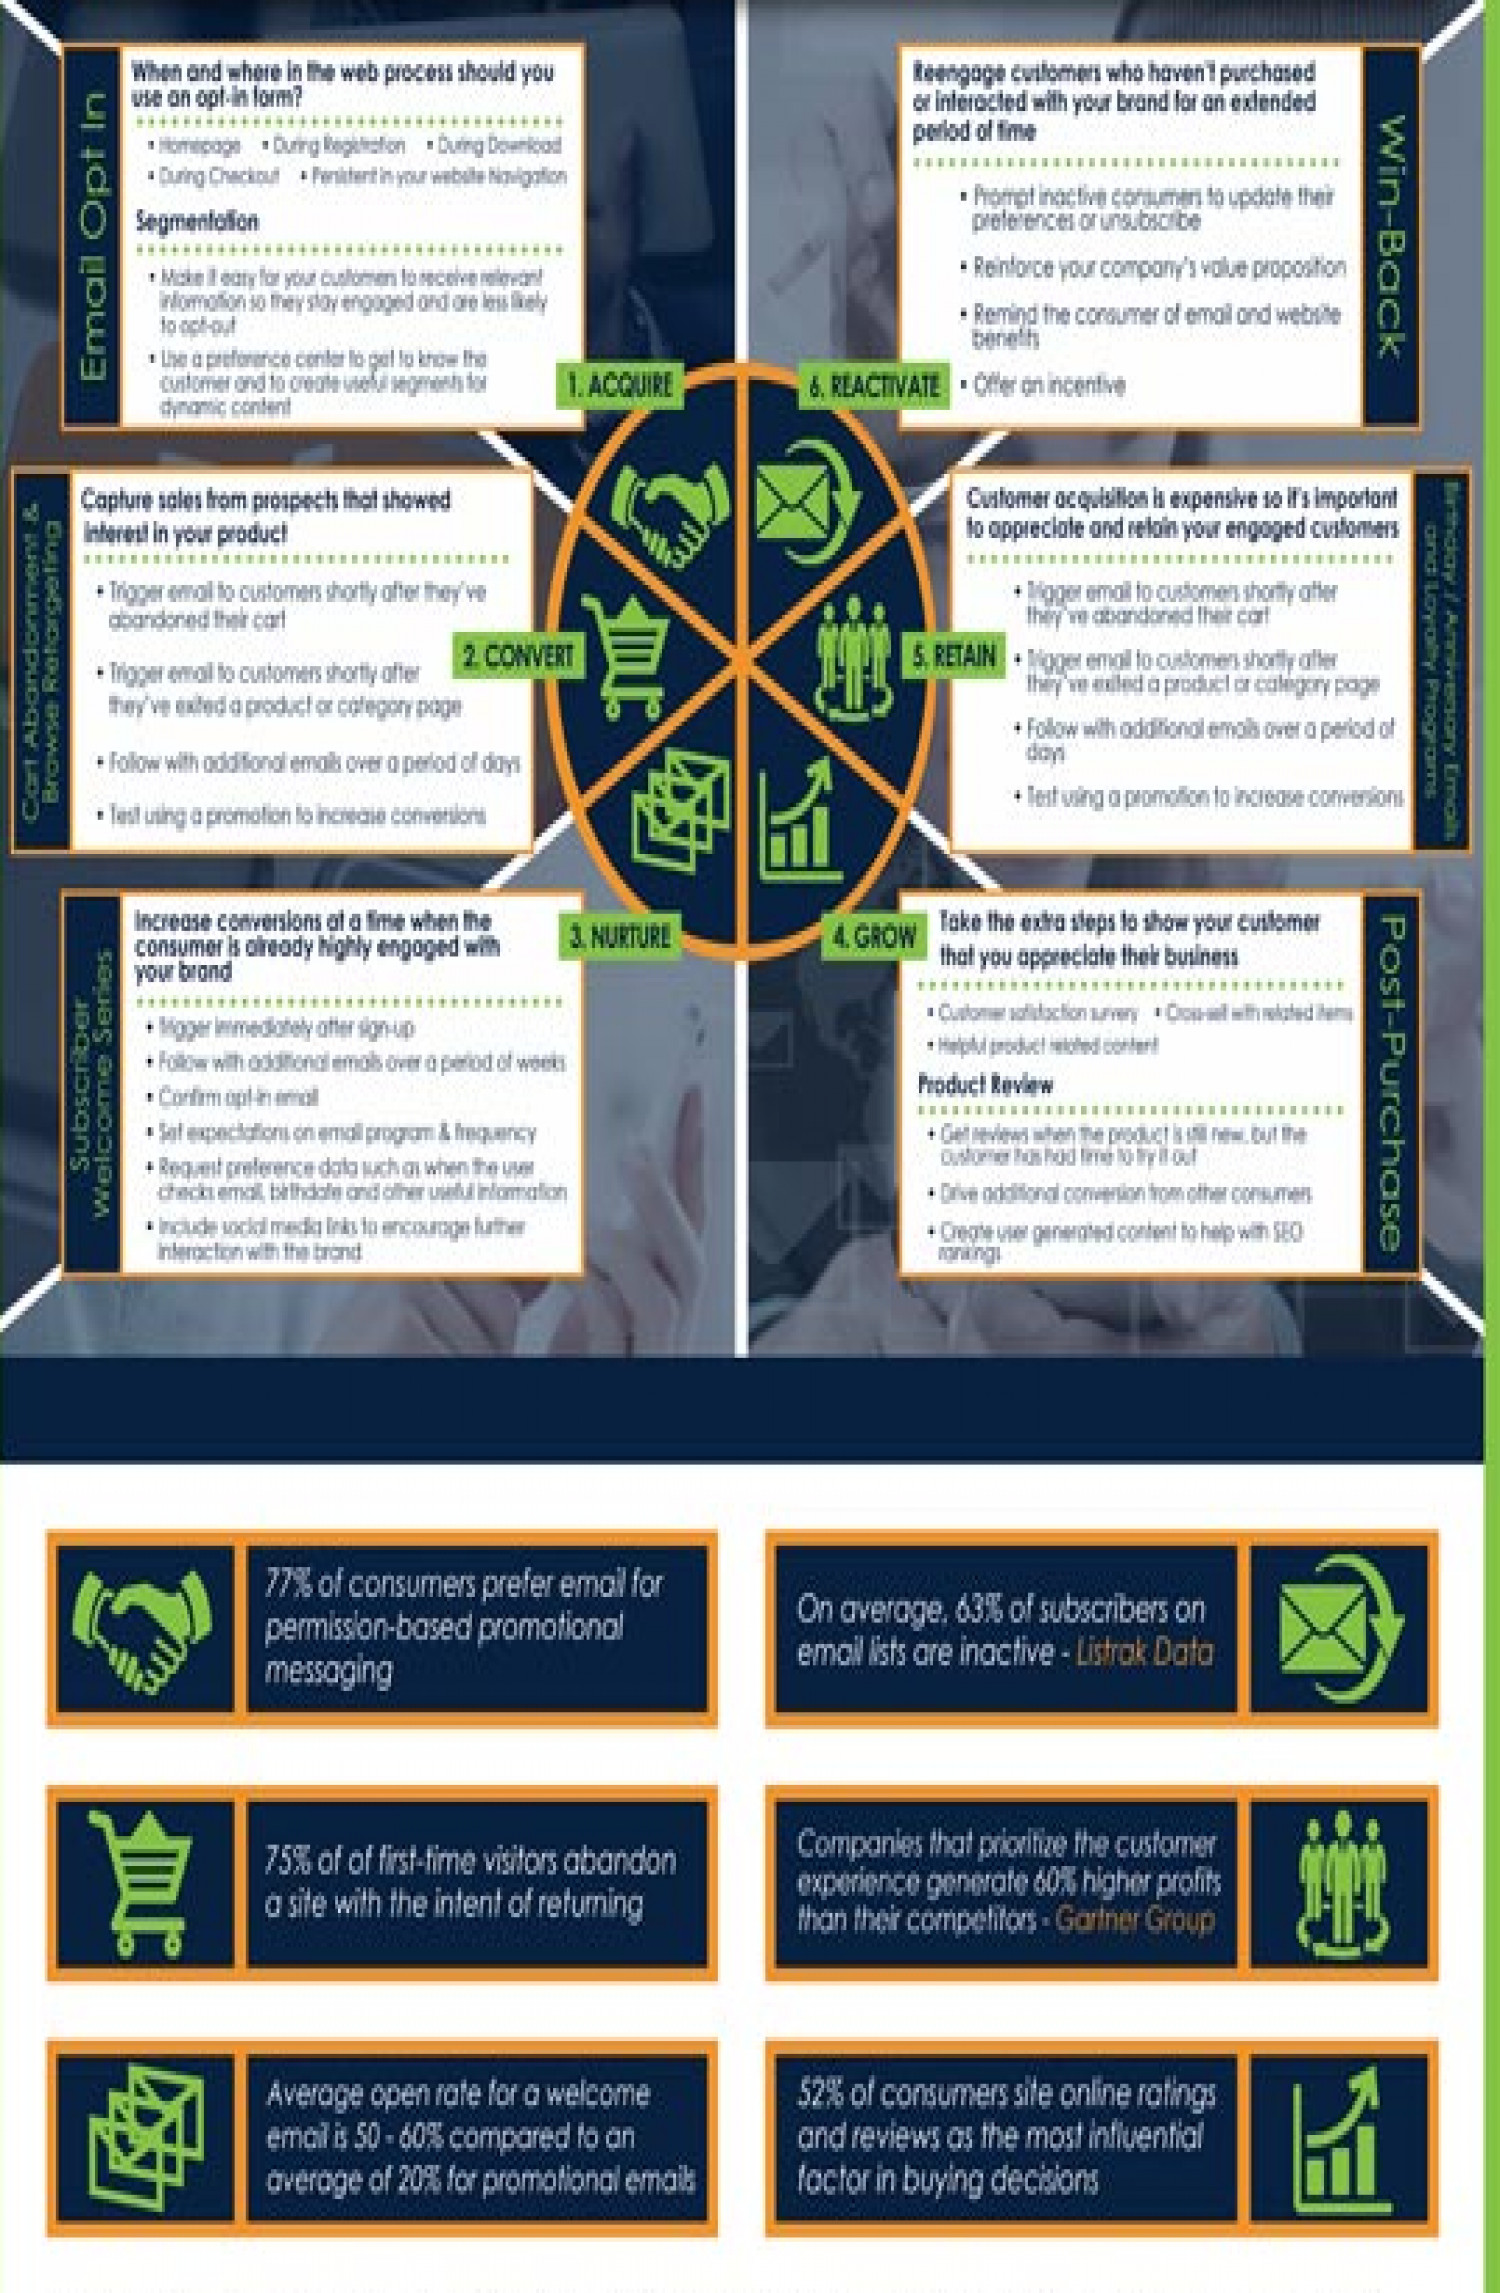 Email Marketing Targeted Messaging for the Customer Life Cycle Infographic